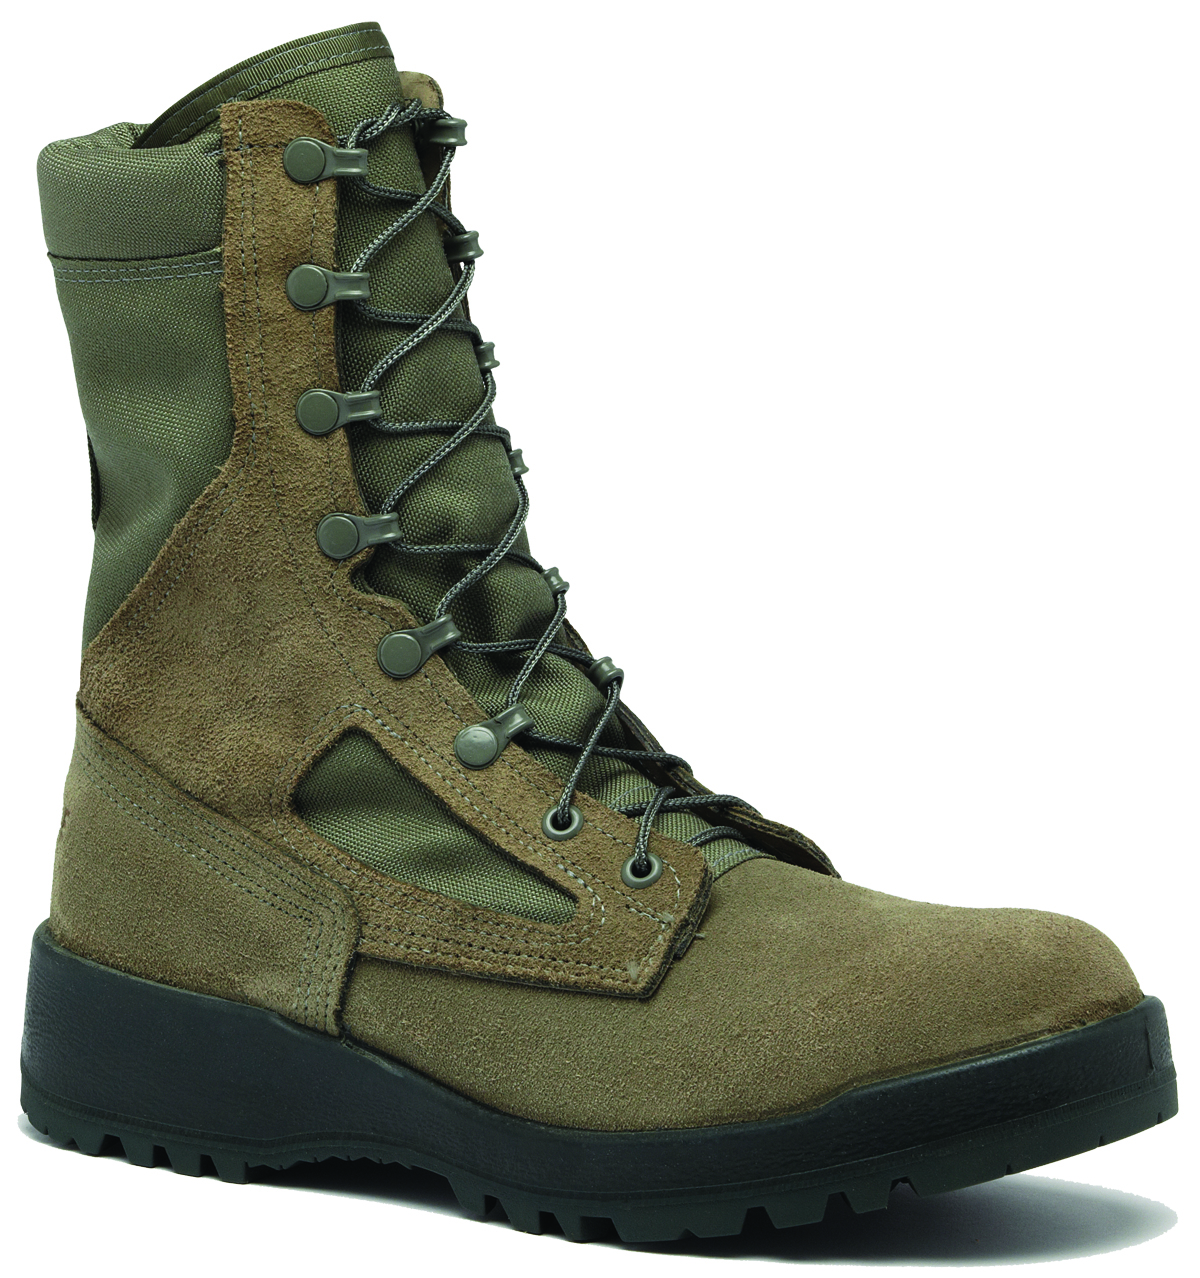 0a3ef76e2818 Steel Composite Toe Military Boots - Free Size Exchange